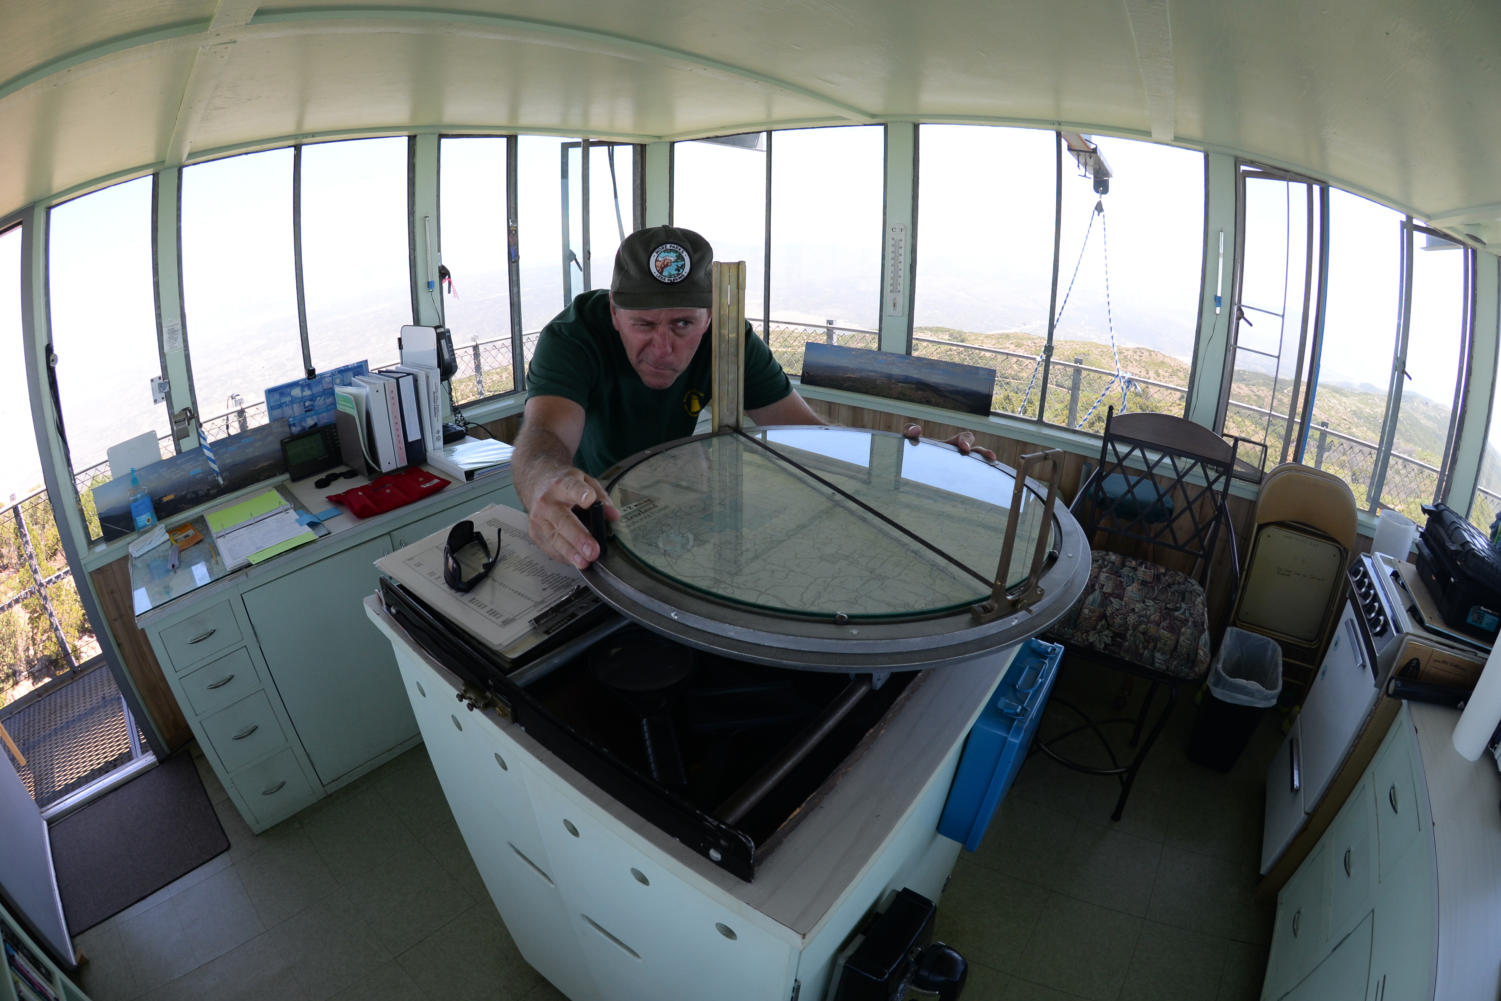 Using the Osborne Fire Finder, volunteer lookout Bill Kaiser determines azimuth (direction in degrees) and distance from the tower of smoke or lighting downstrikes. This information is radioed to Cleveland National Forest who can deploy ground crews, helicopters or air tankers to fight the fire. The Osborne fire finder was developed in 1914 and still used in towers today.